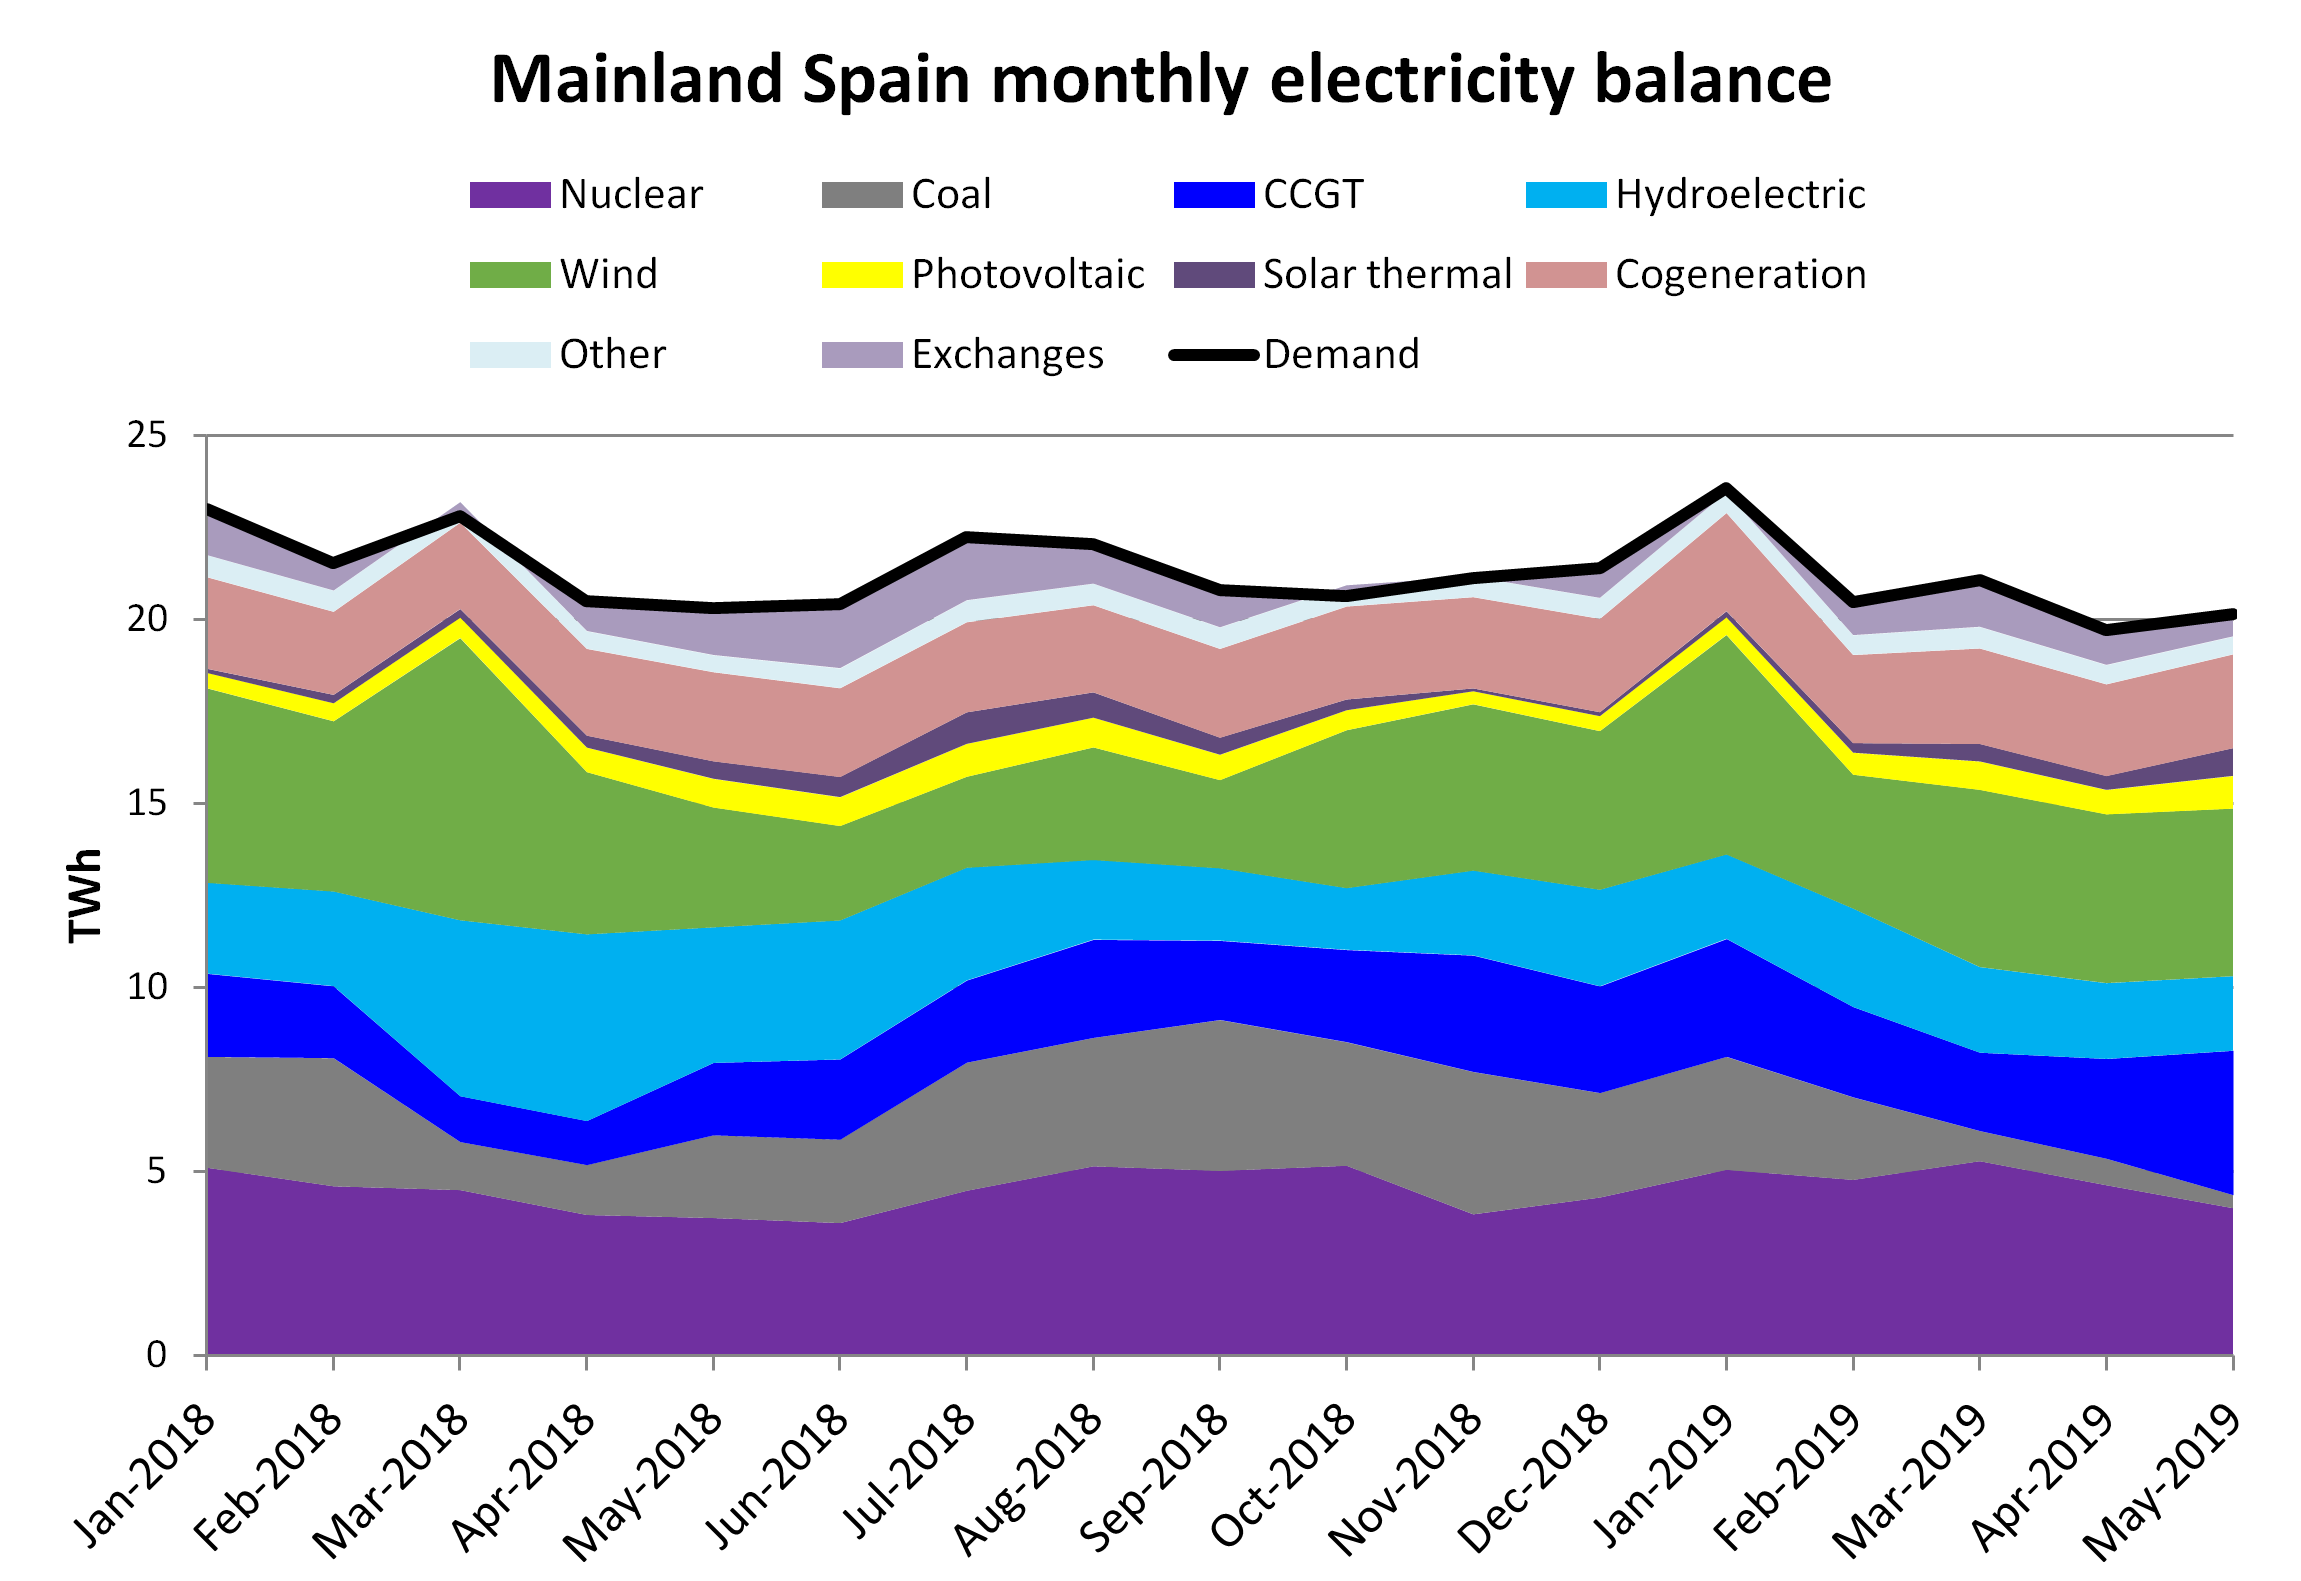 AleaSoft - Monthly electricity Balance Spain Demand Production